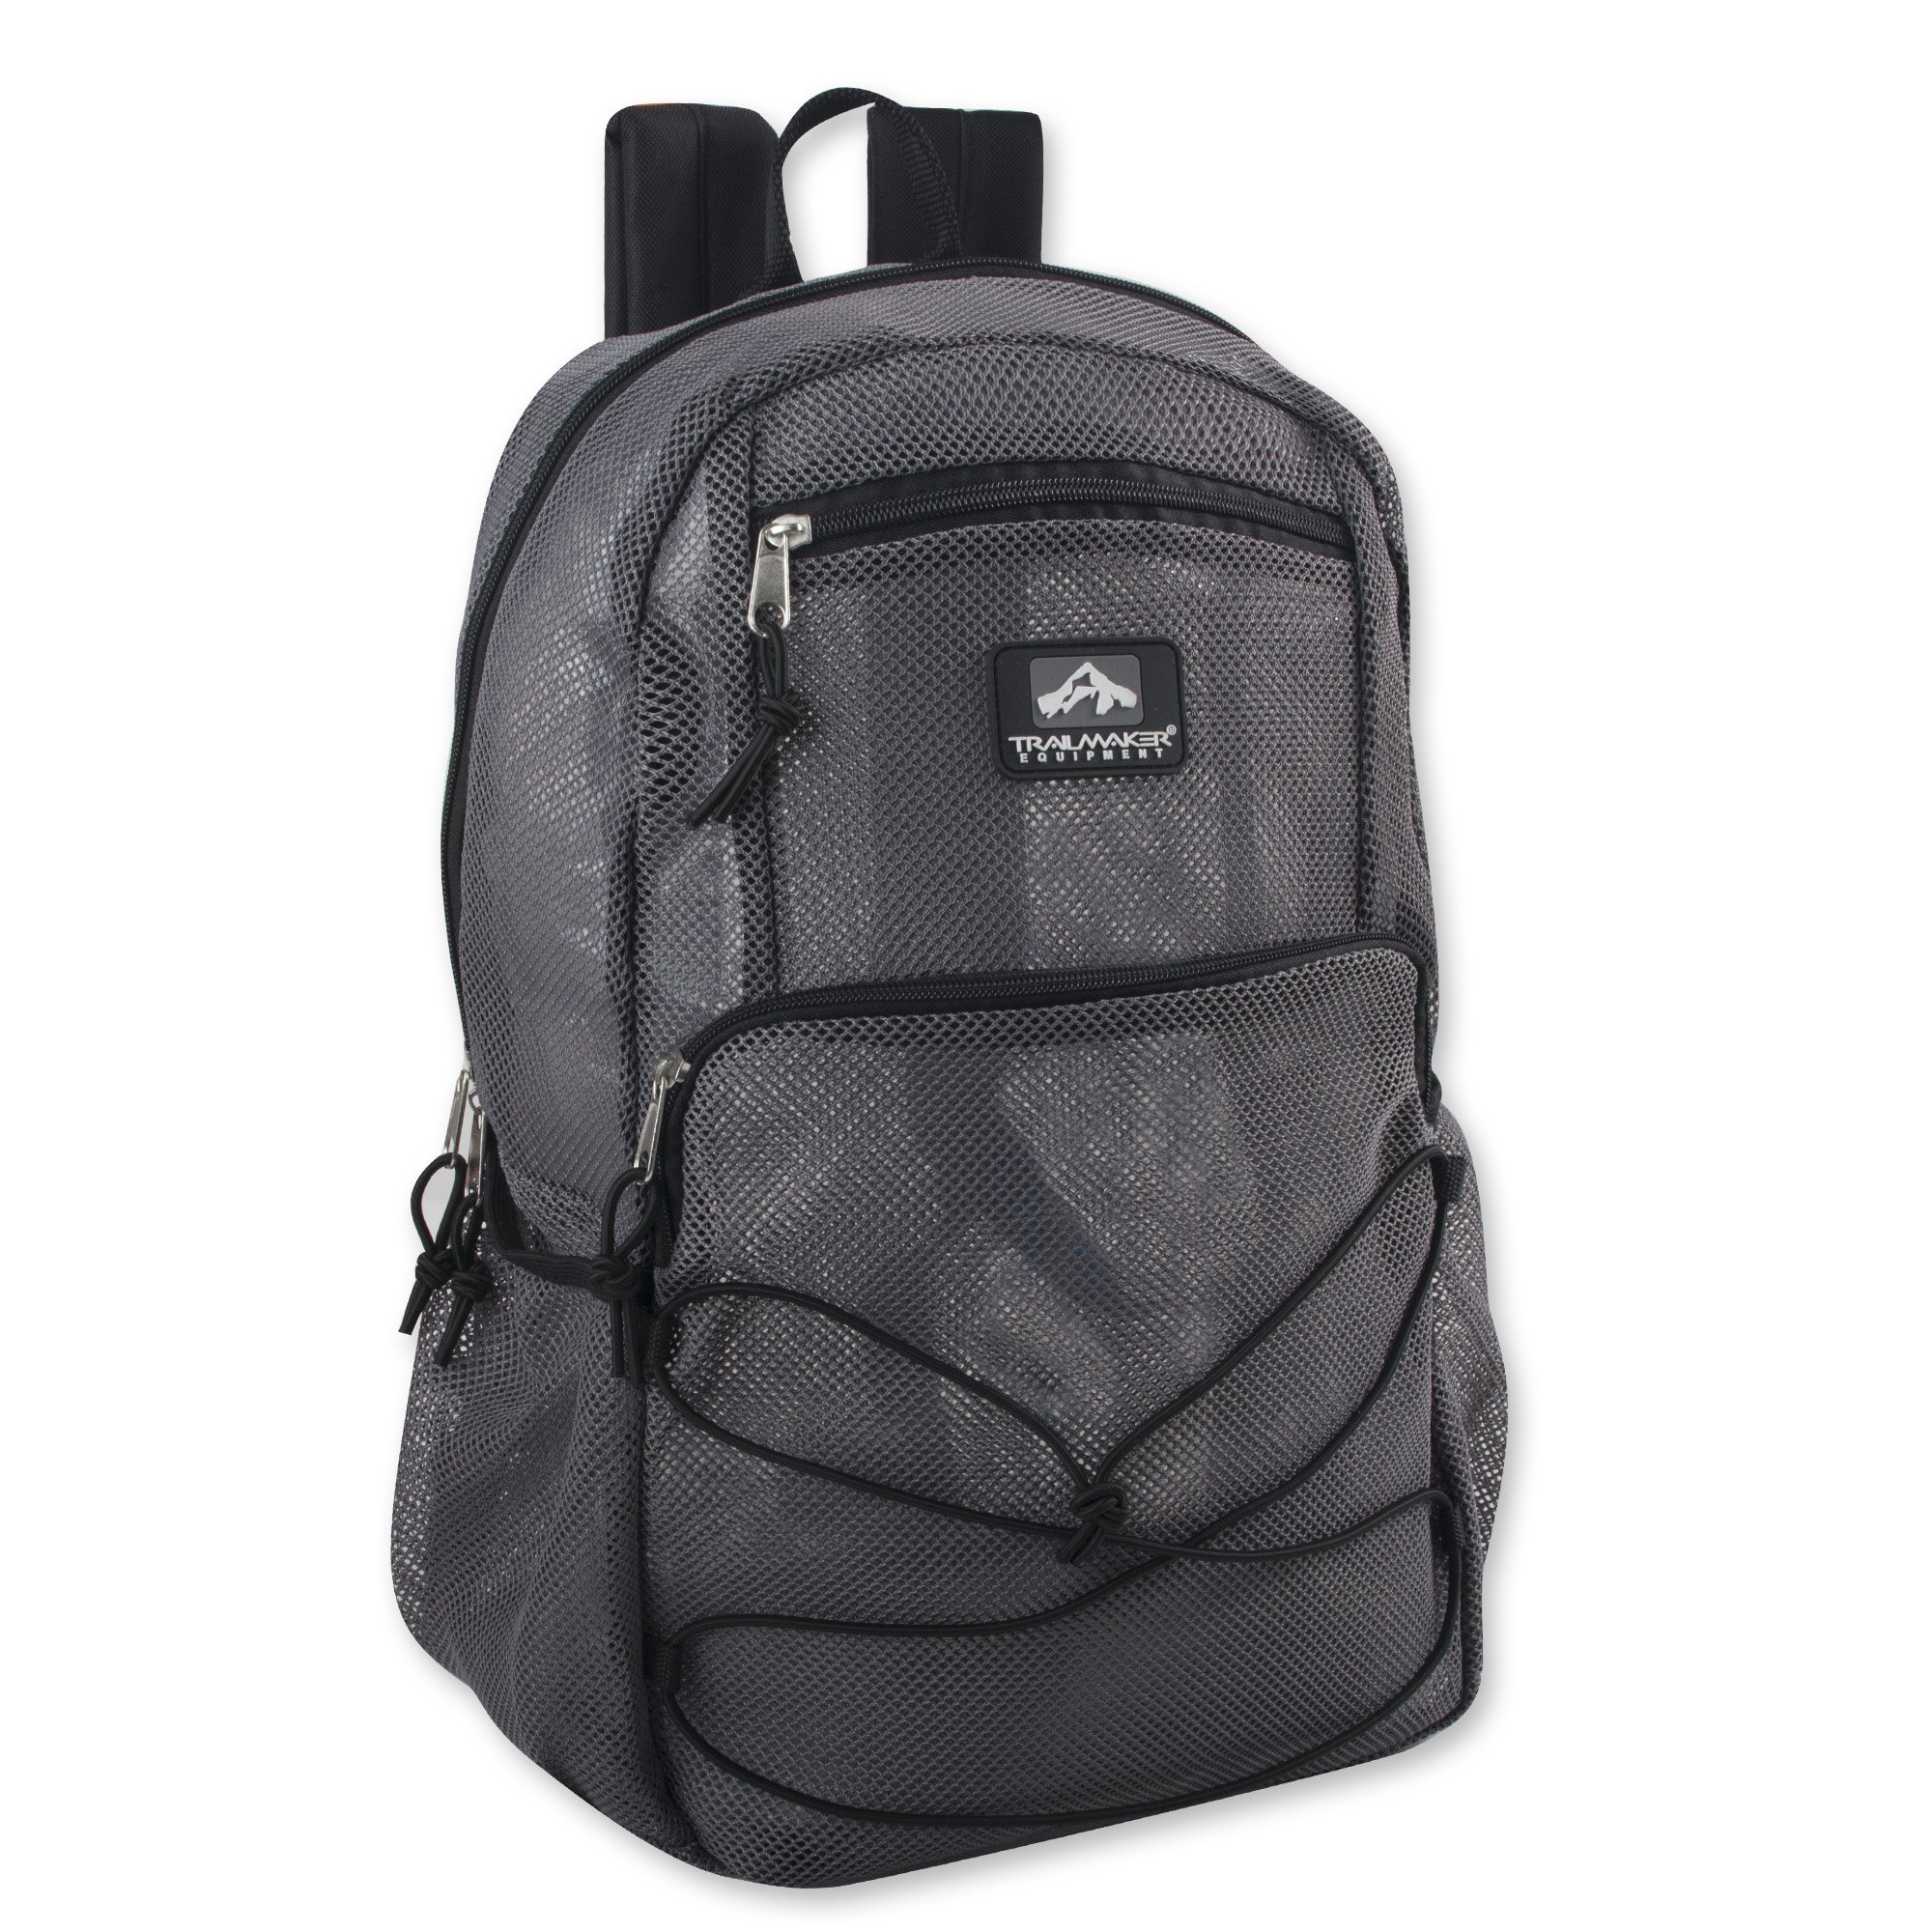 Deluxe Mesh Bungee Backpack With Padded Shoulder Straps (Grey)